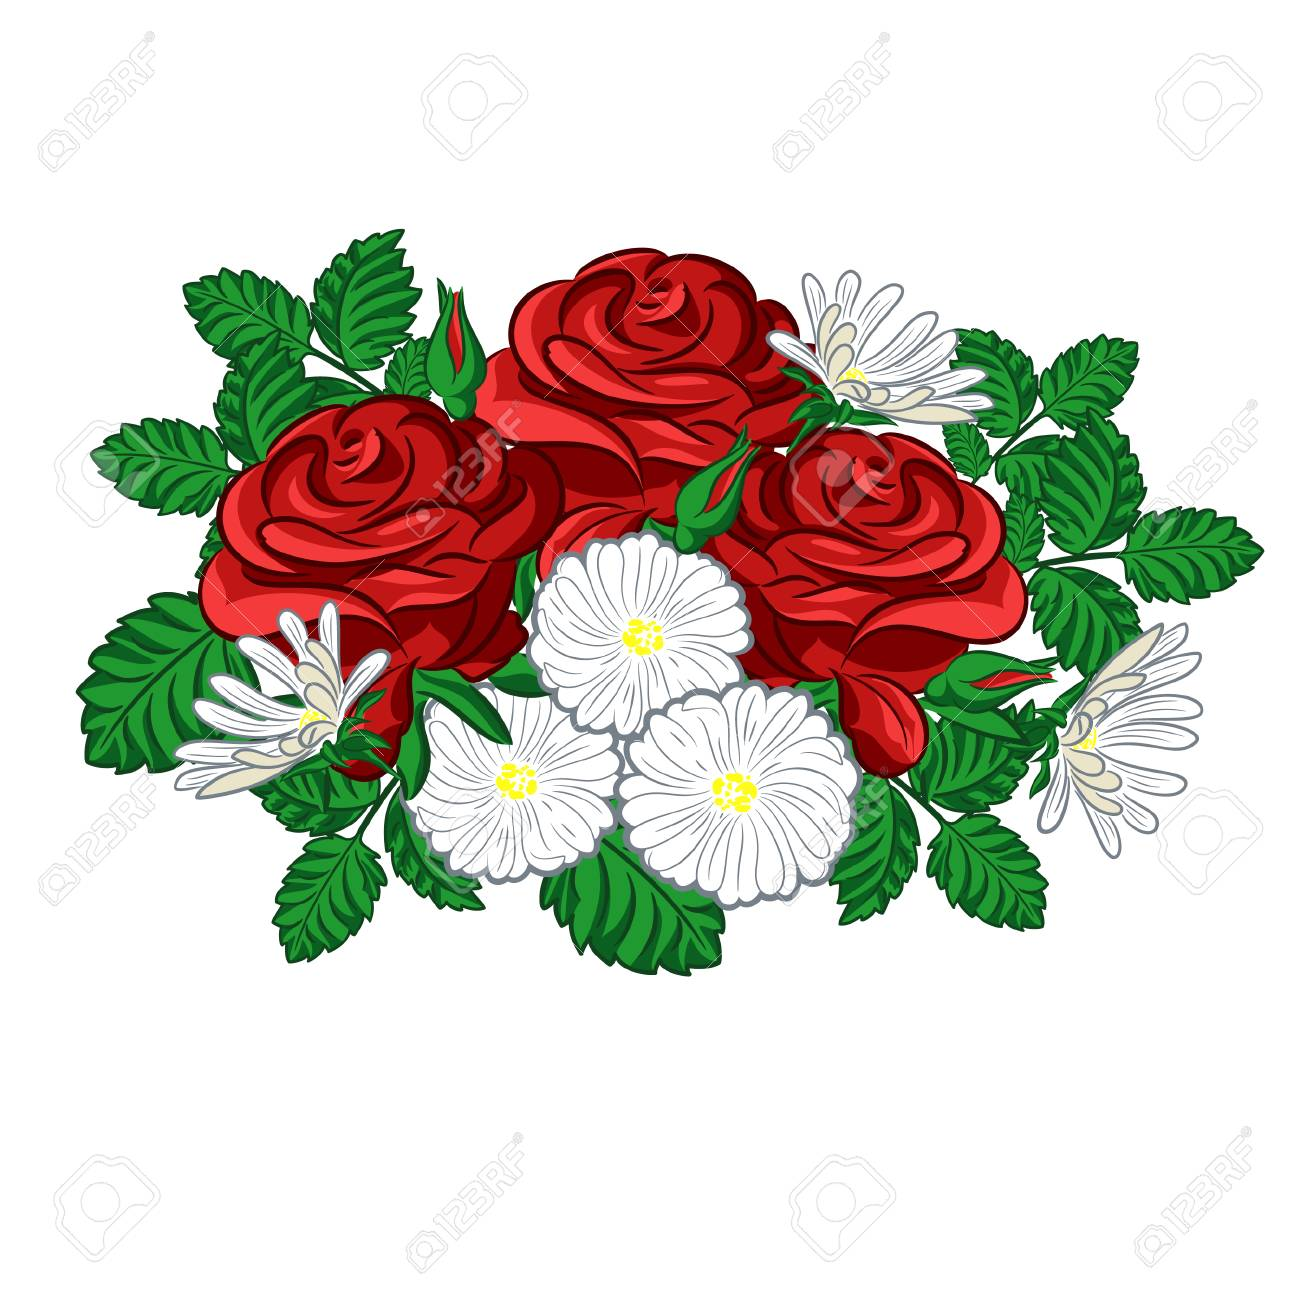 A Compsition With Roses And Daisies For Greeting Card Or Wedding ...